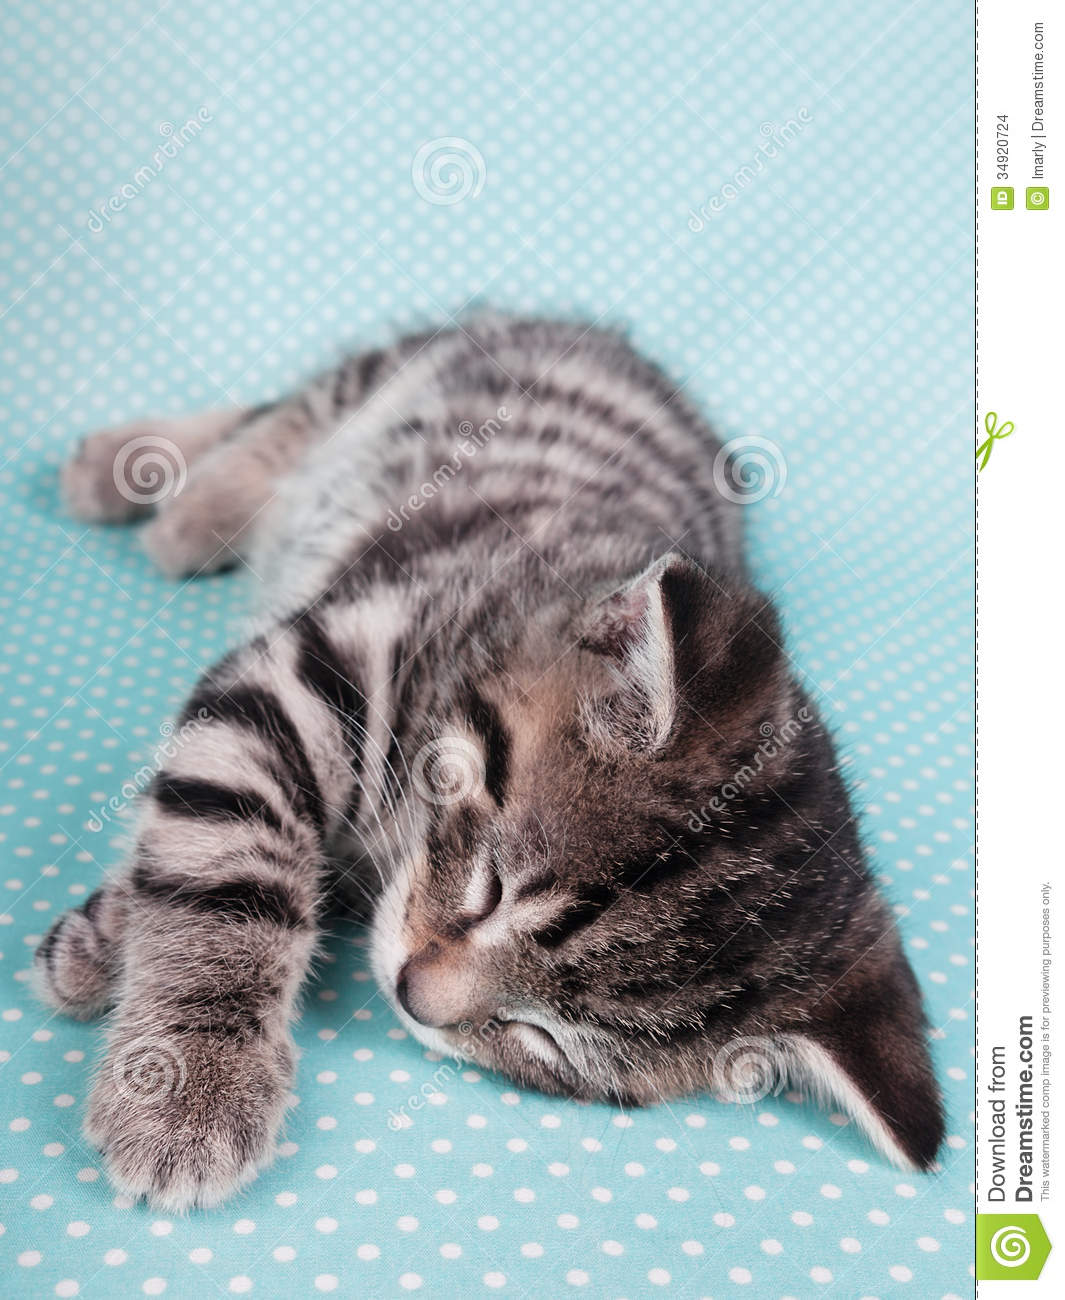 A Cute Kitten Sleeping Peacefully Stock Image